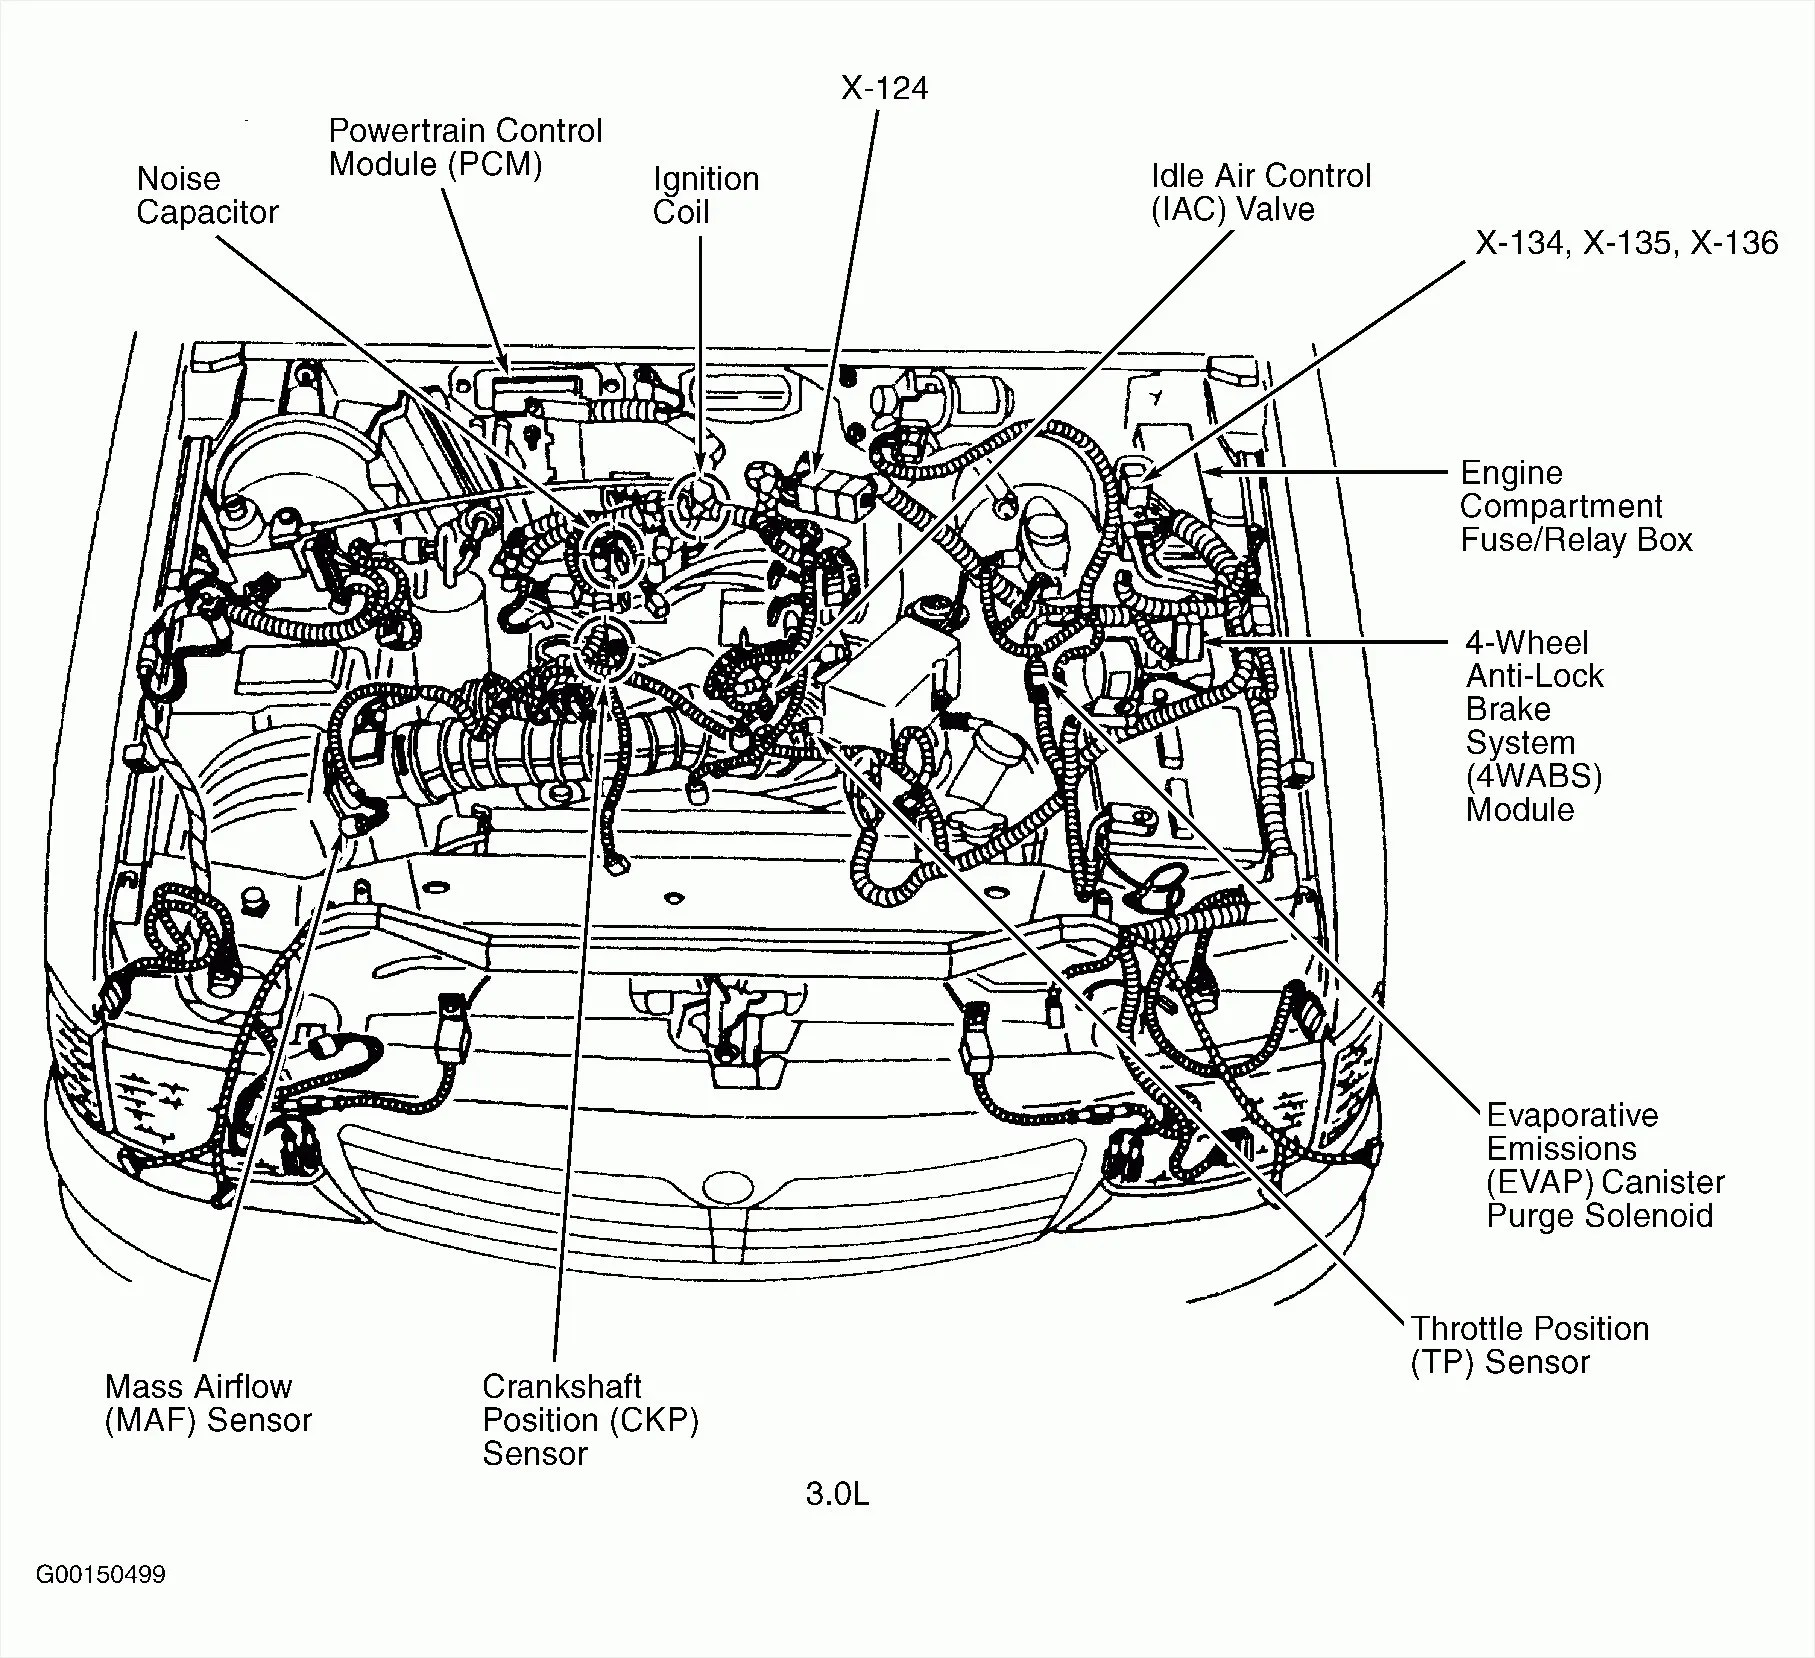 hight resolution of 2 5 dodge avenger engine diagram wiring diagram expert2010 dodge avenger engine diagram wiring diagram toolbox